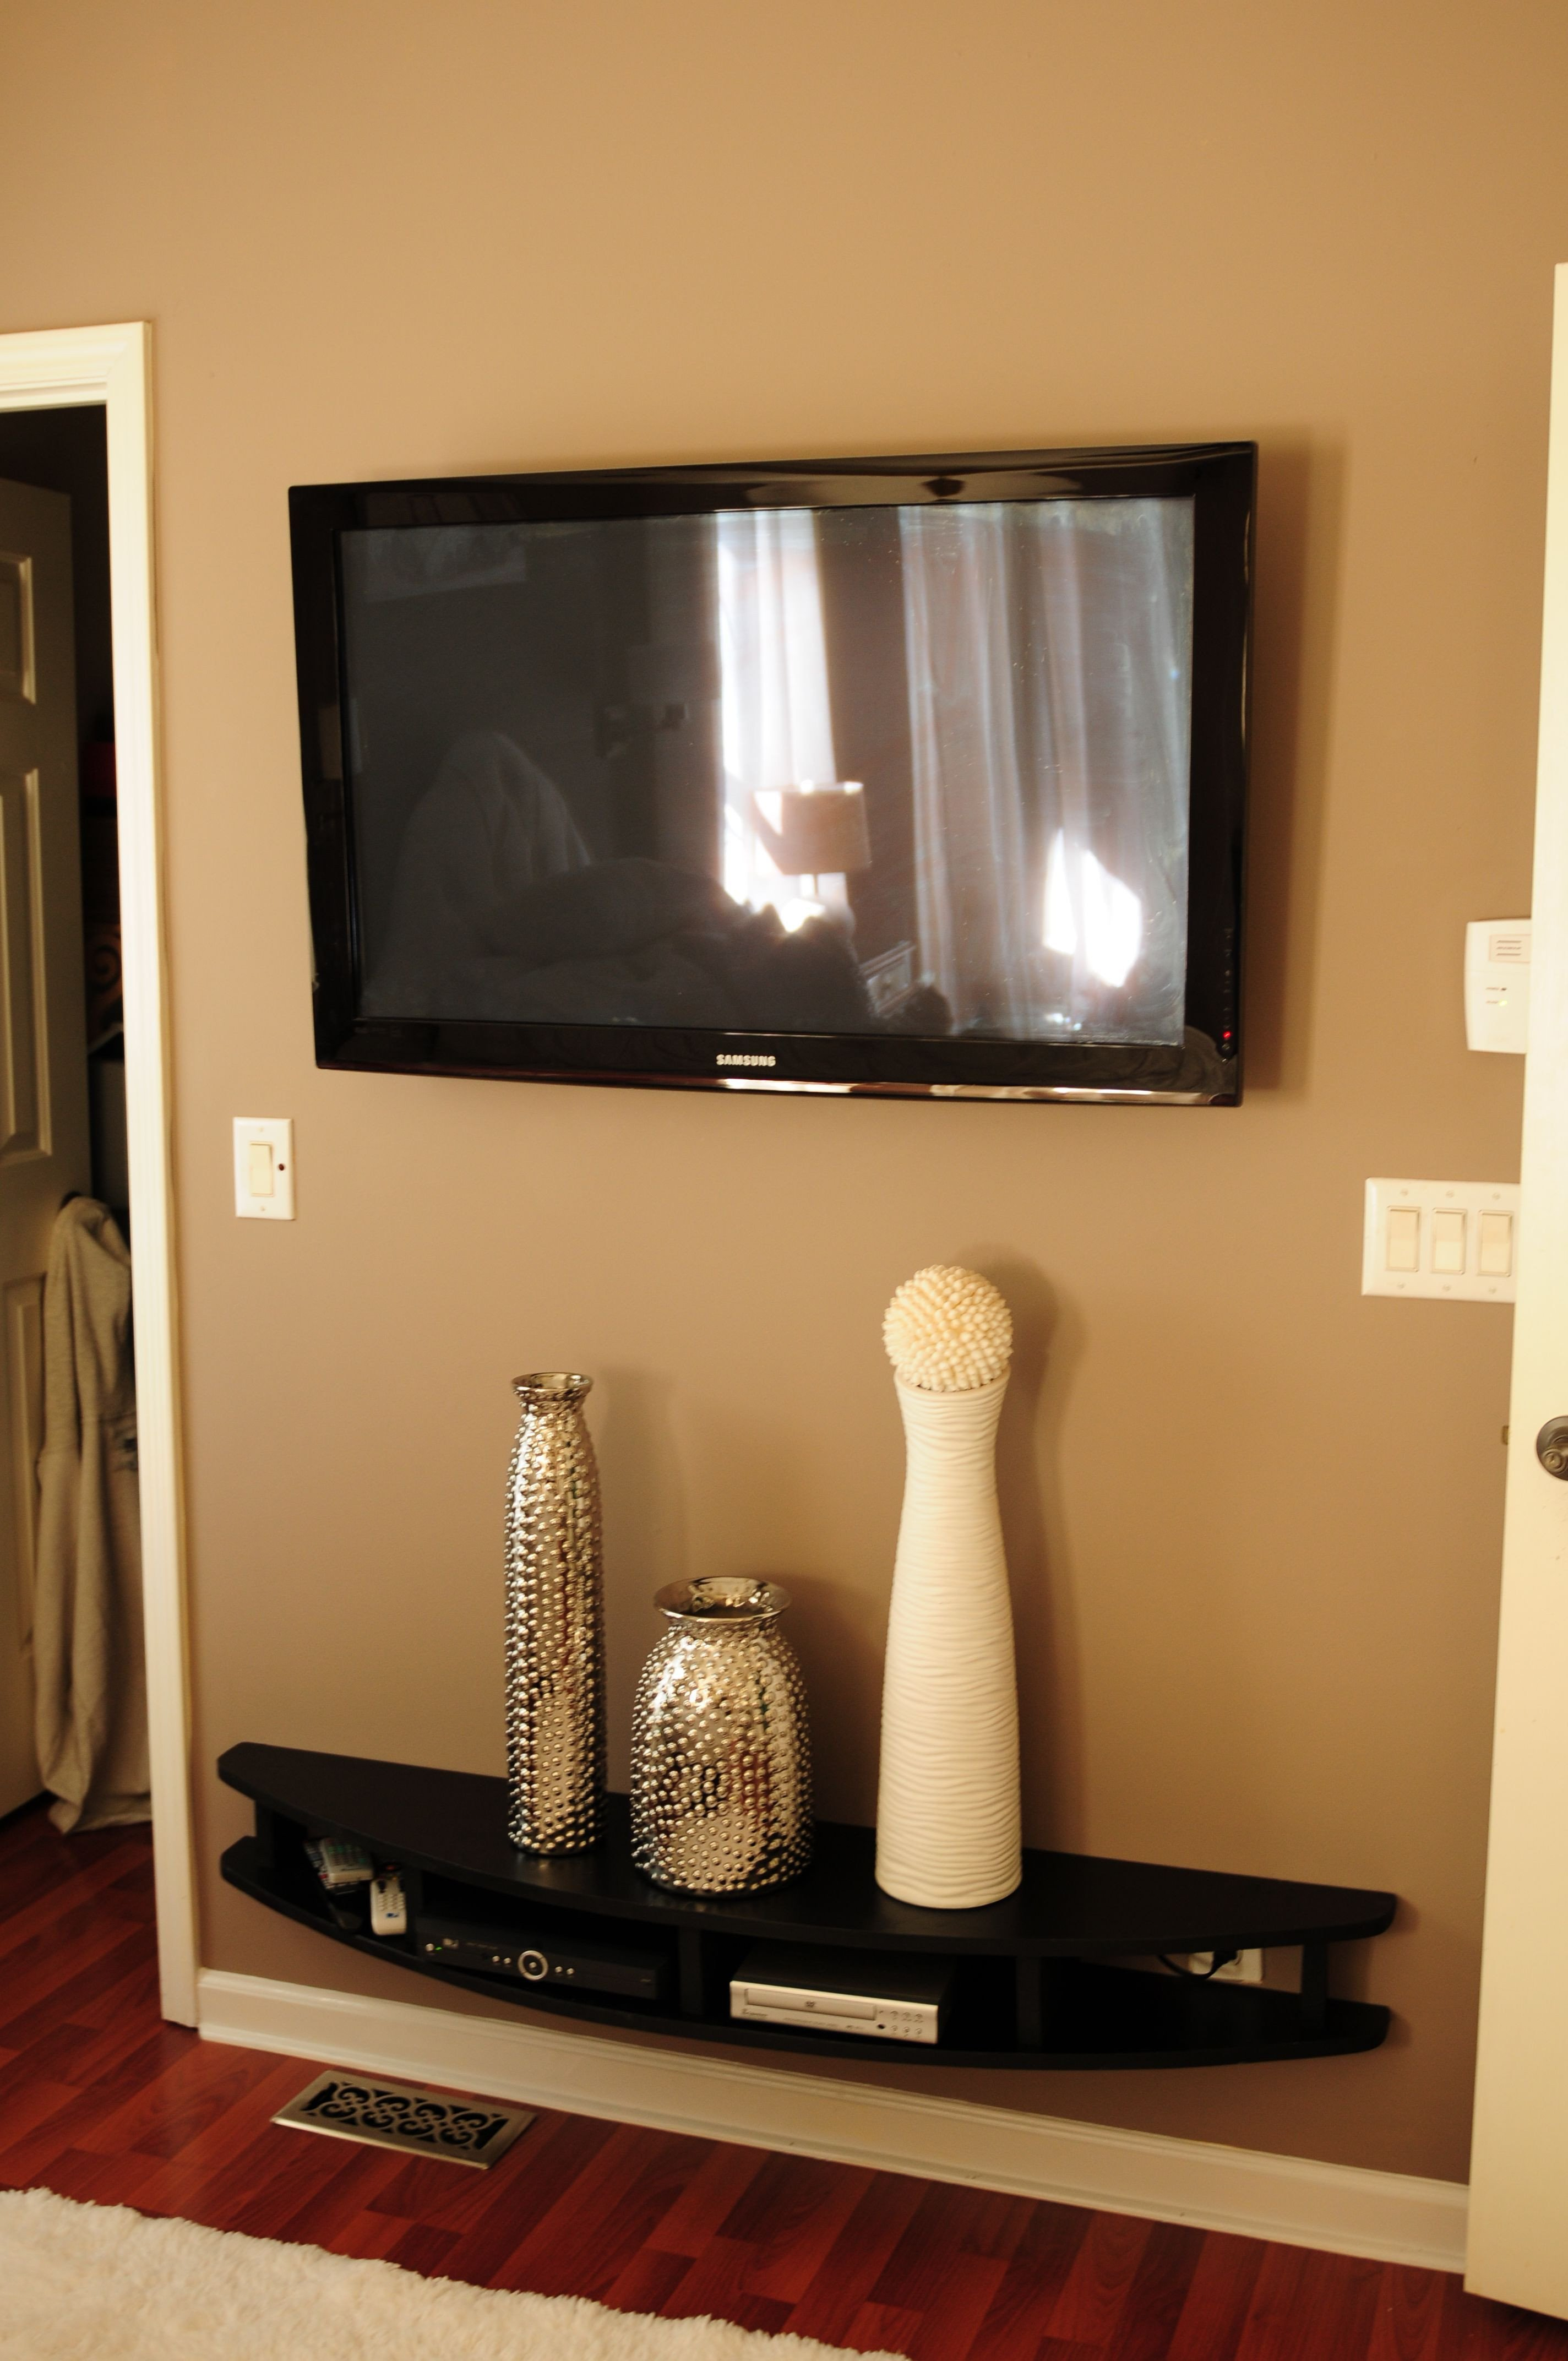 Table for Tv In Bedroom Best Of 9 Best Tv Wall Mount Ideas for Living Room